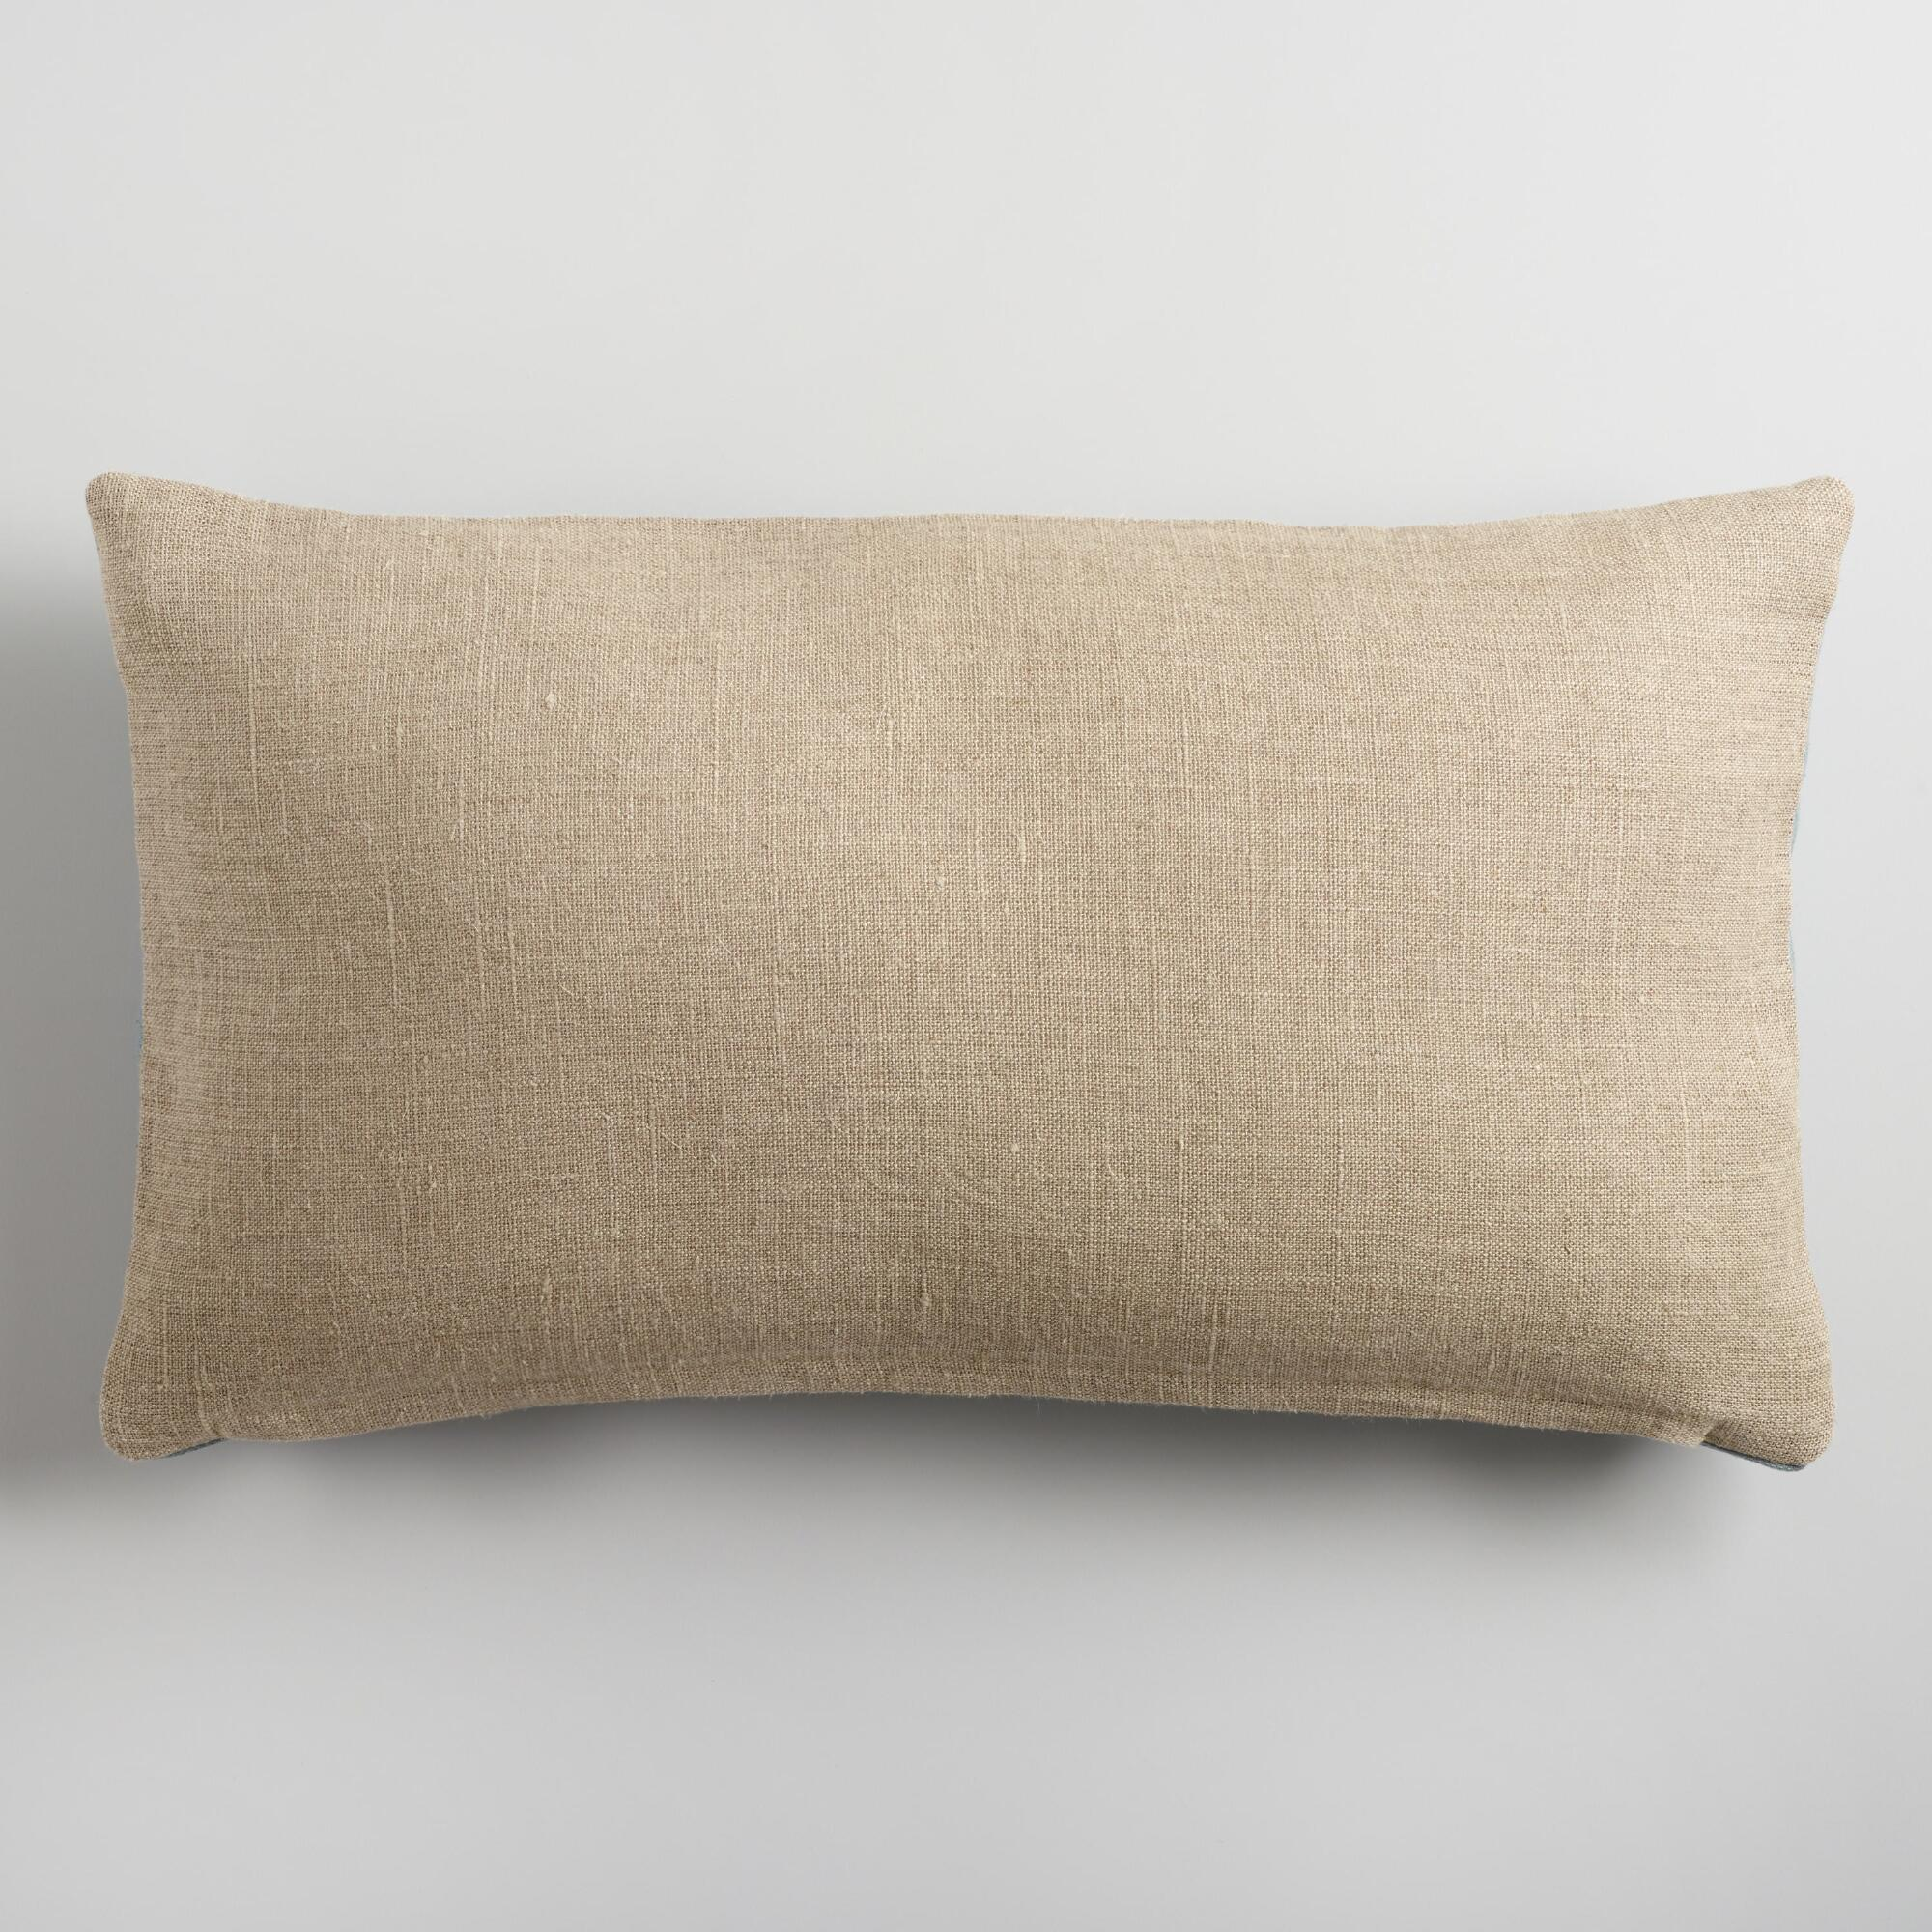 button style french tufted shop willow tufting pillow traditional pillows collection with sofa laundry